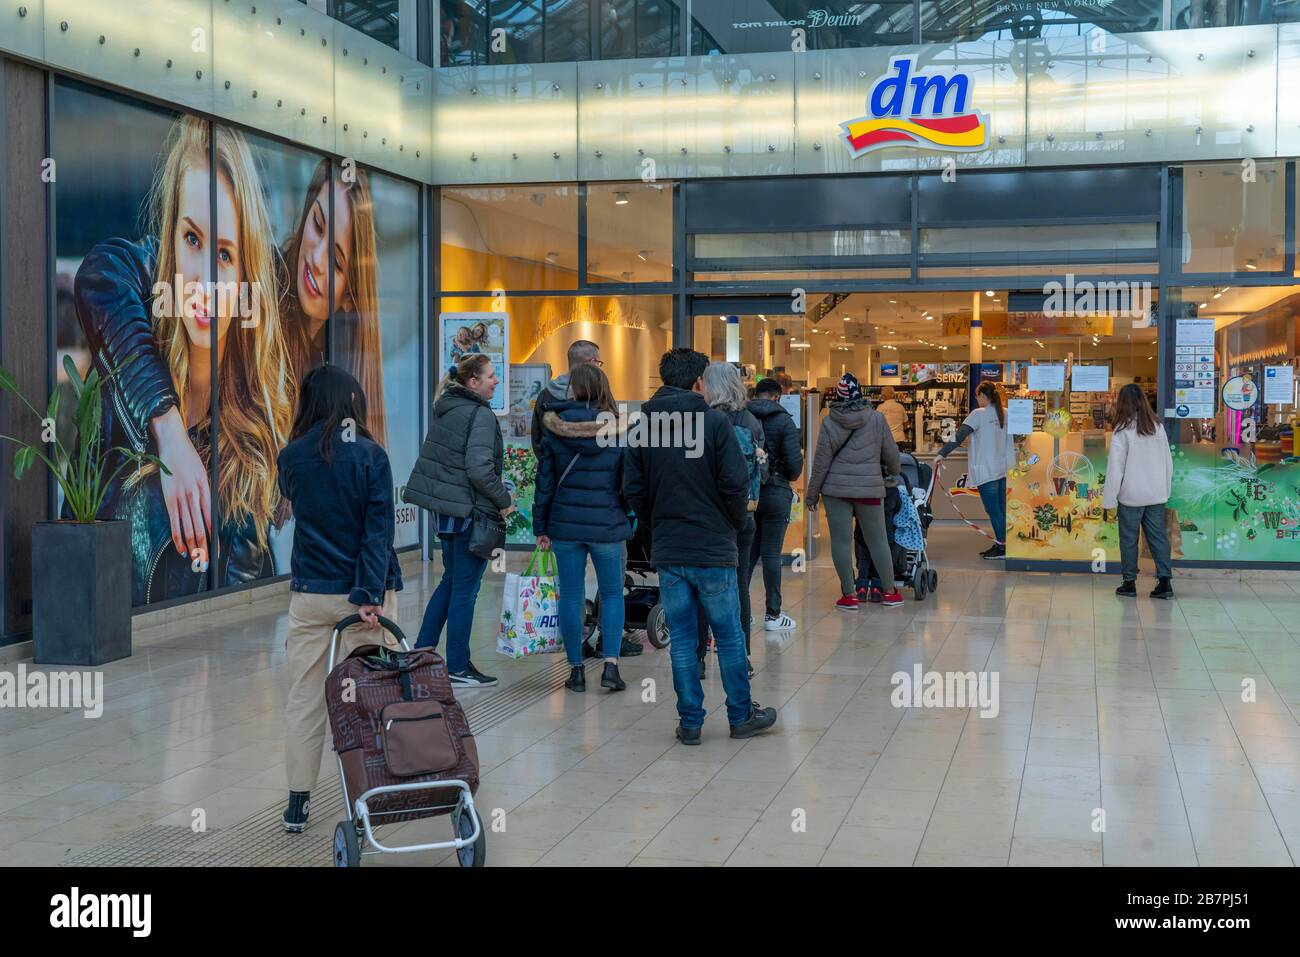 Dm Dm Market High Resolution Stock Photography And Images Alamy